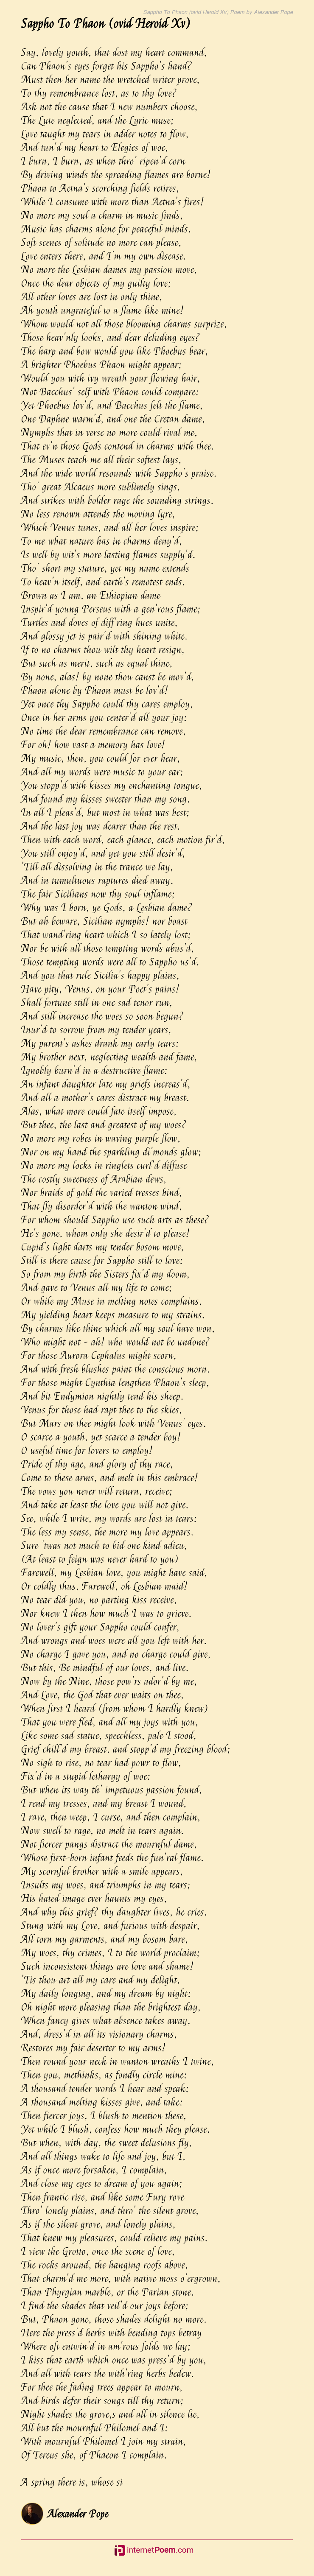 Sappho To Phaon Ovid Heroid Xv Poem By Alexander Pope